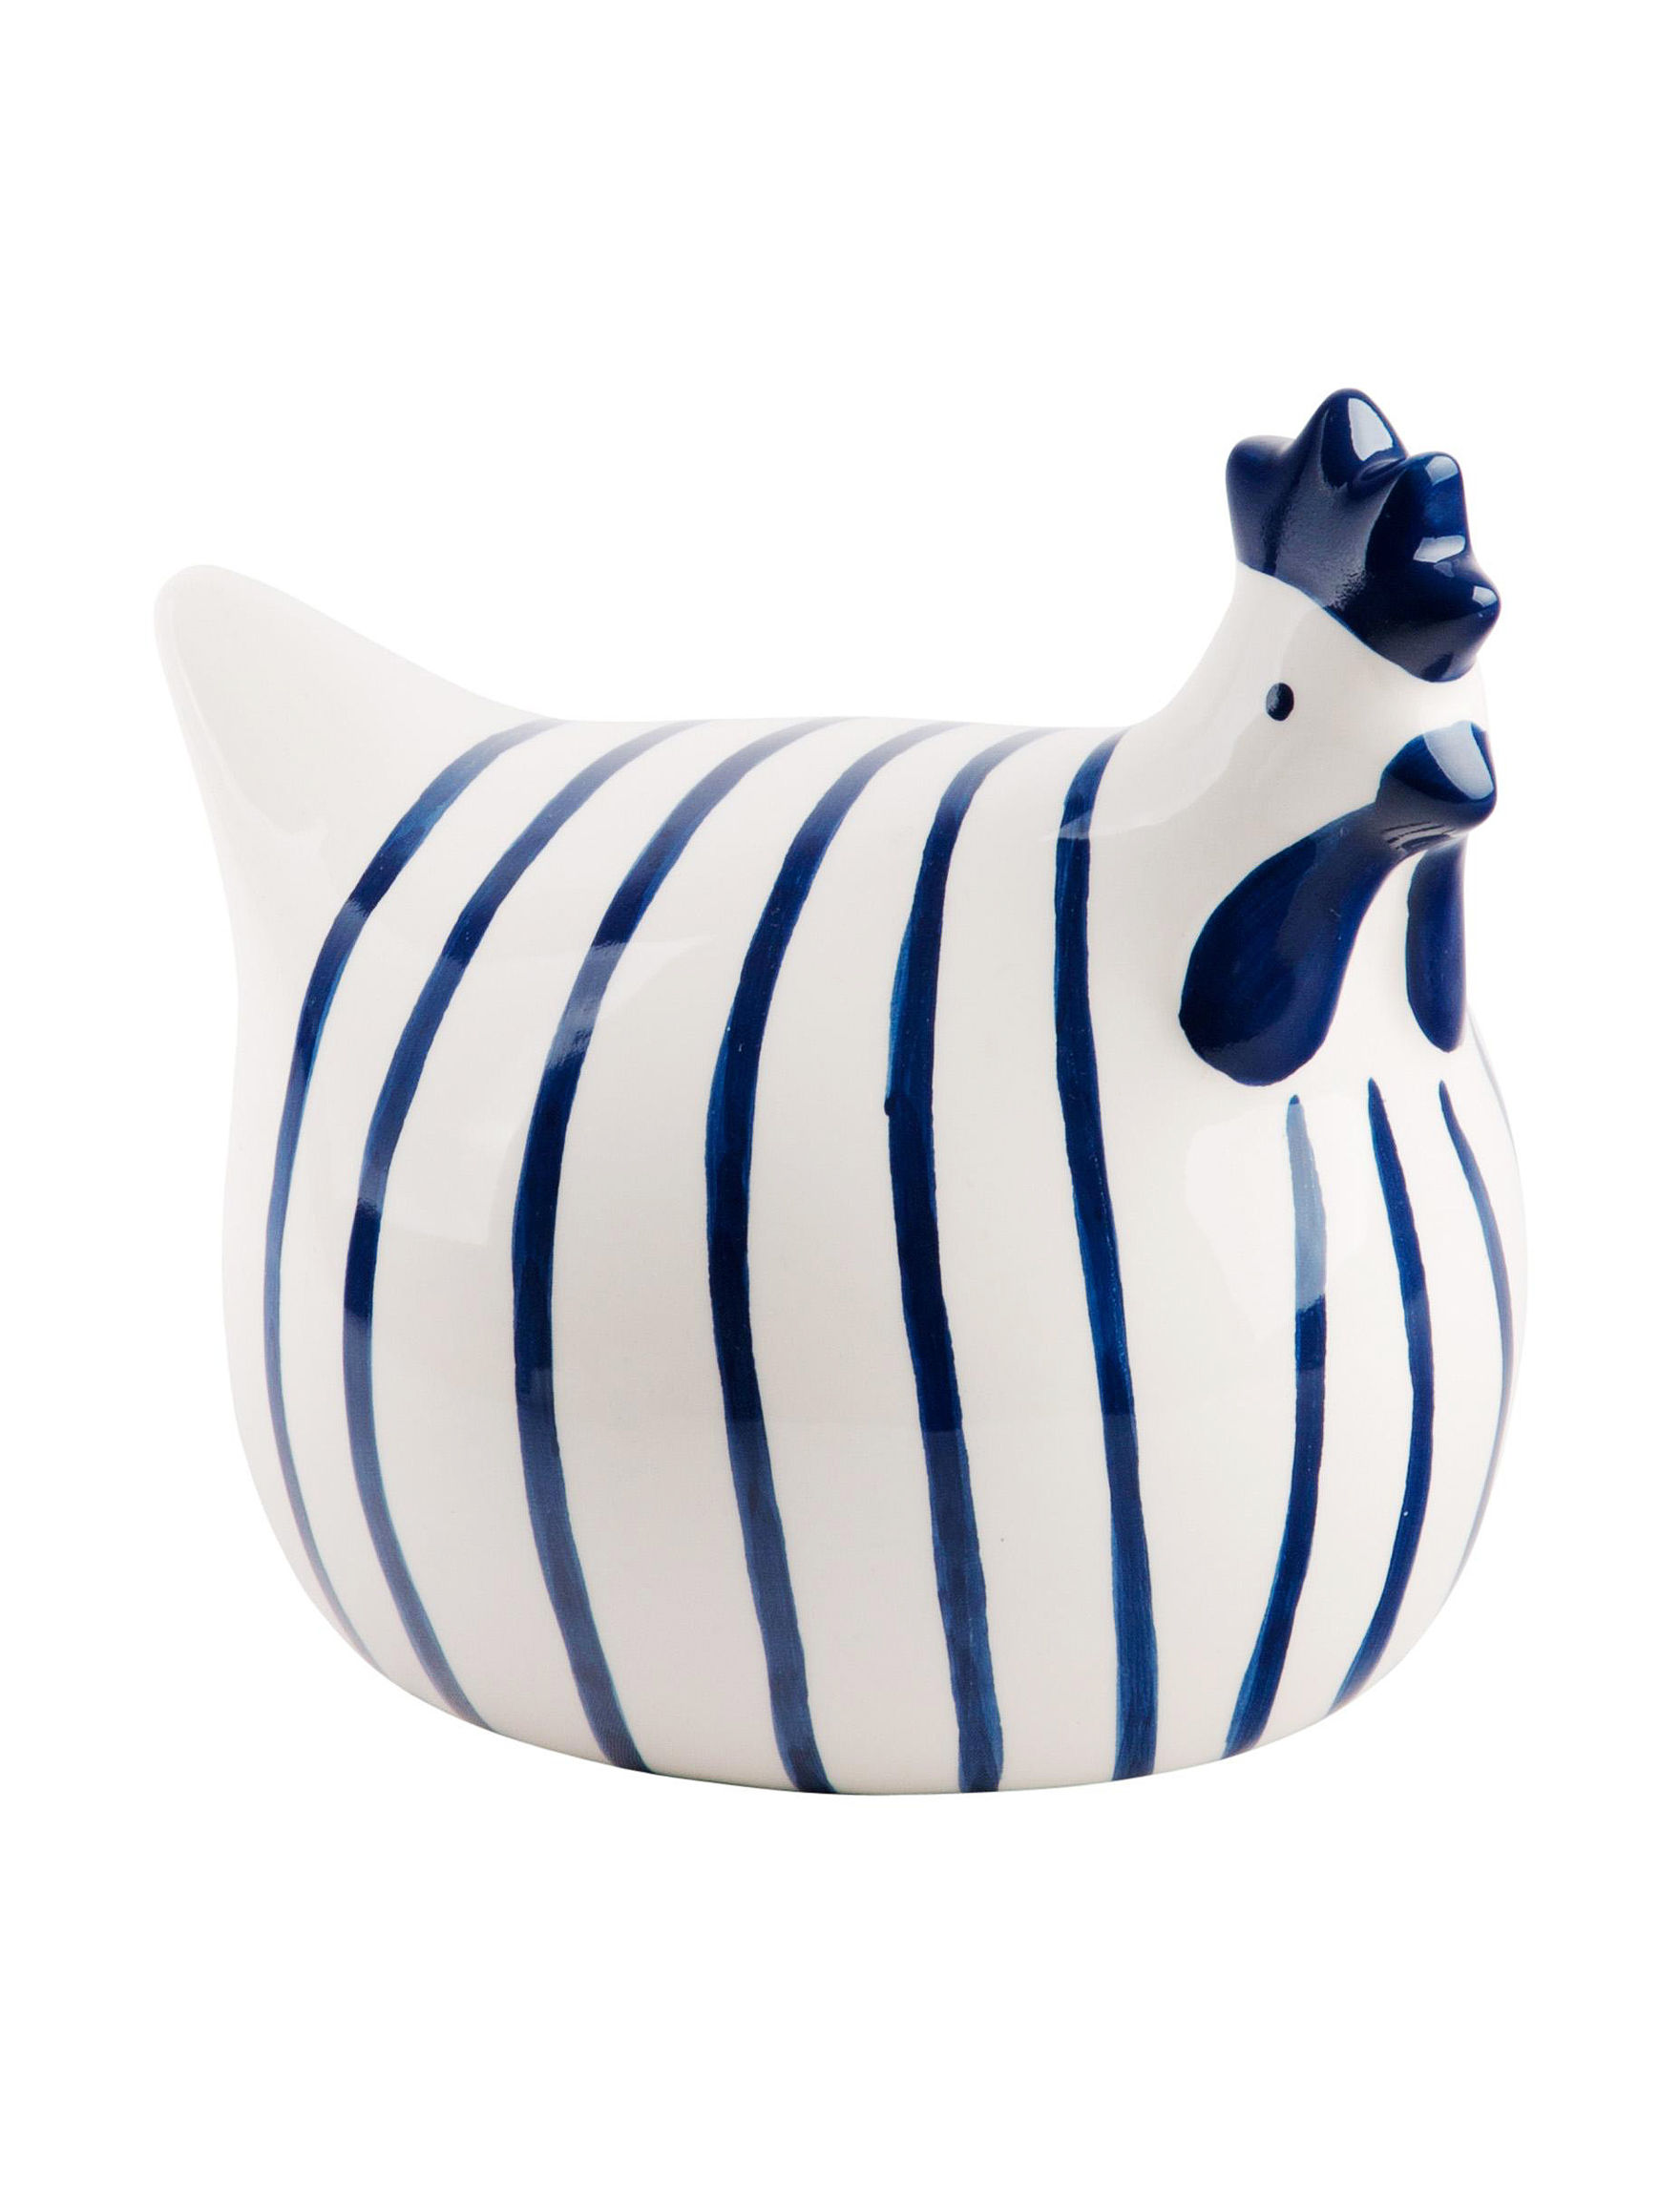 Home Essentials Blue / White Decorative Objects Home Accents